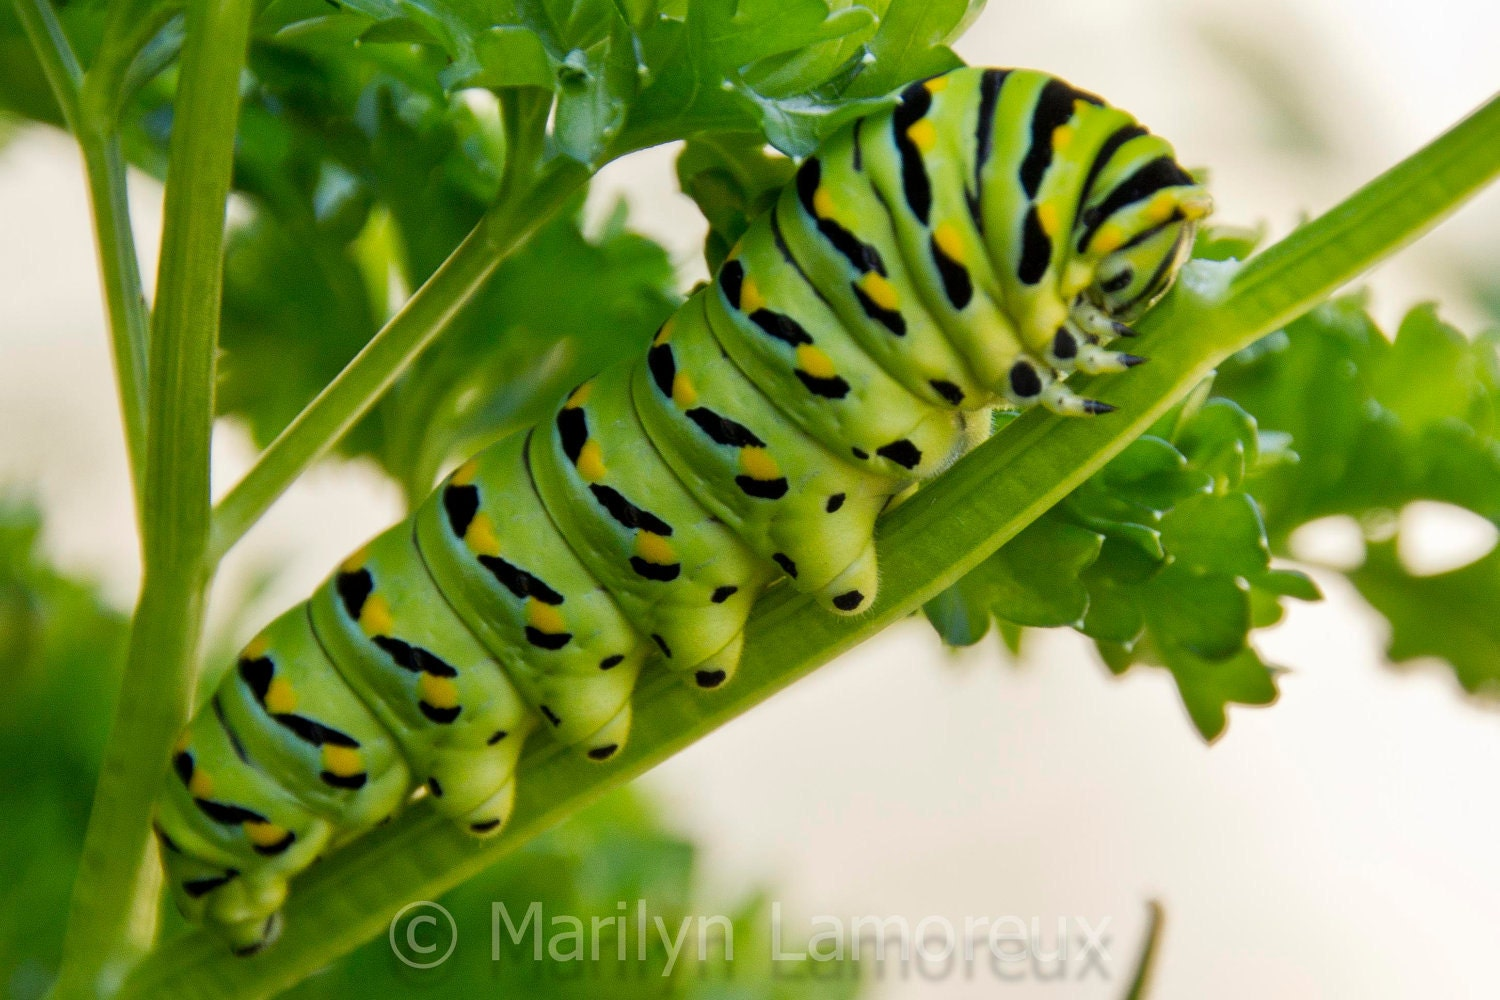 Nature Photography - Fine Art Photography - Green & Black Swallowtail Caterpillar - Wall Art Pictures - 8x10 print